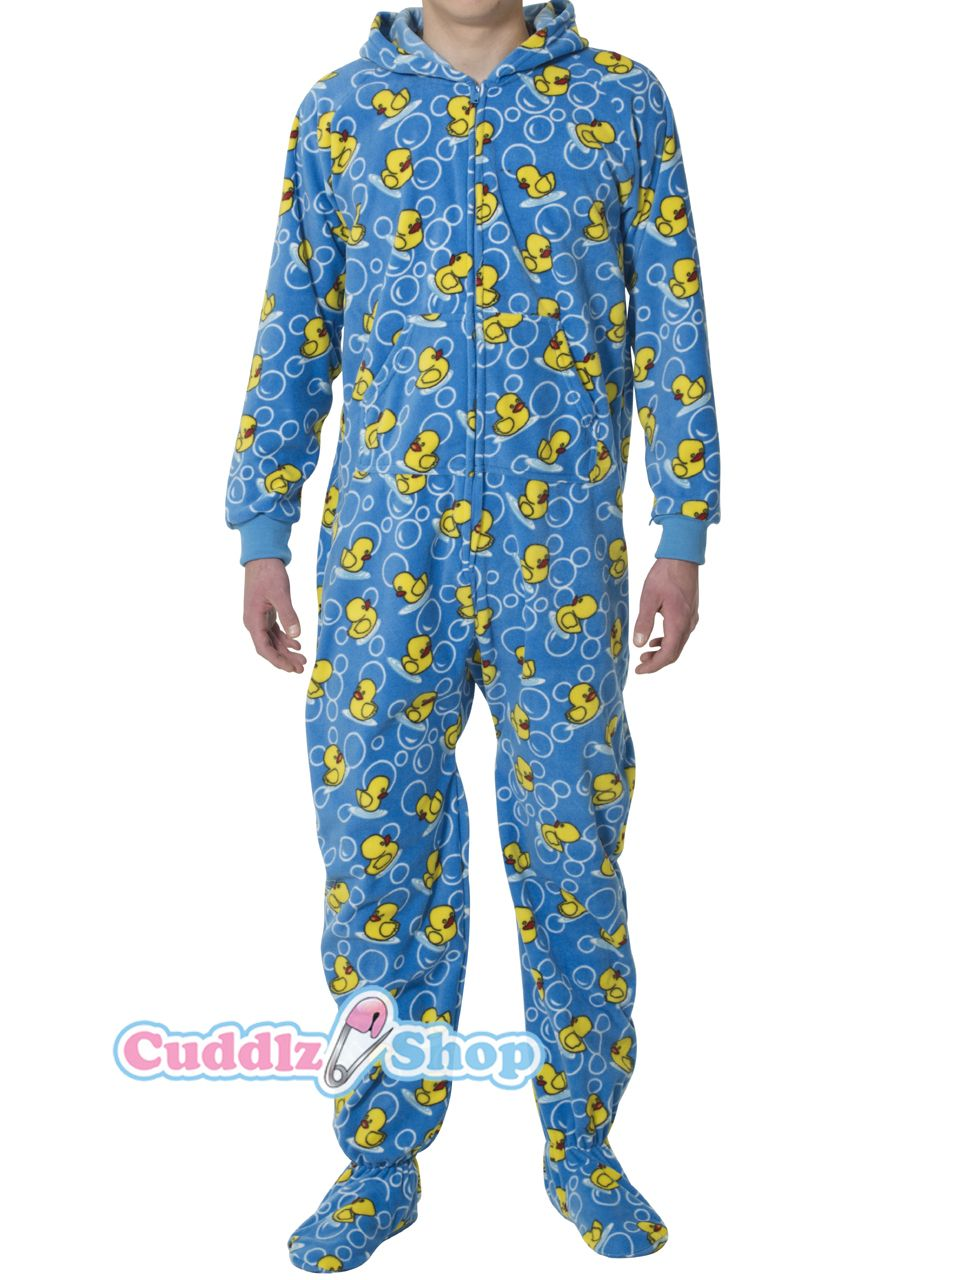 Adult sleeper pajamas